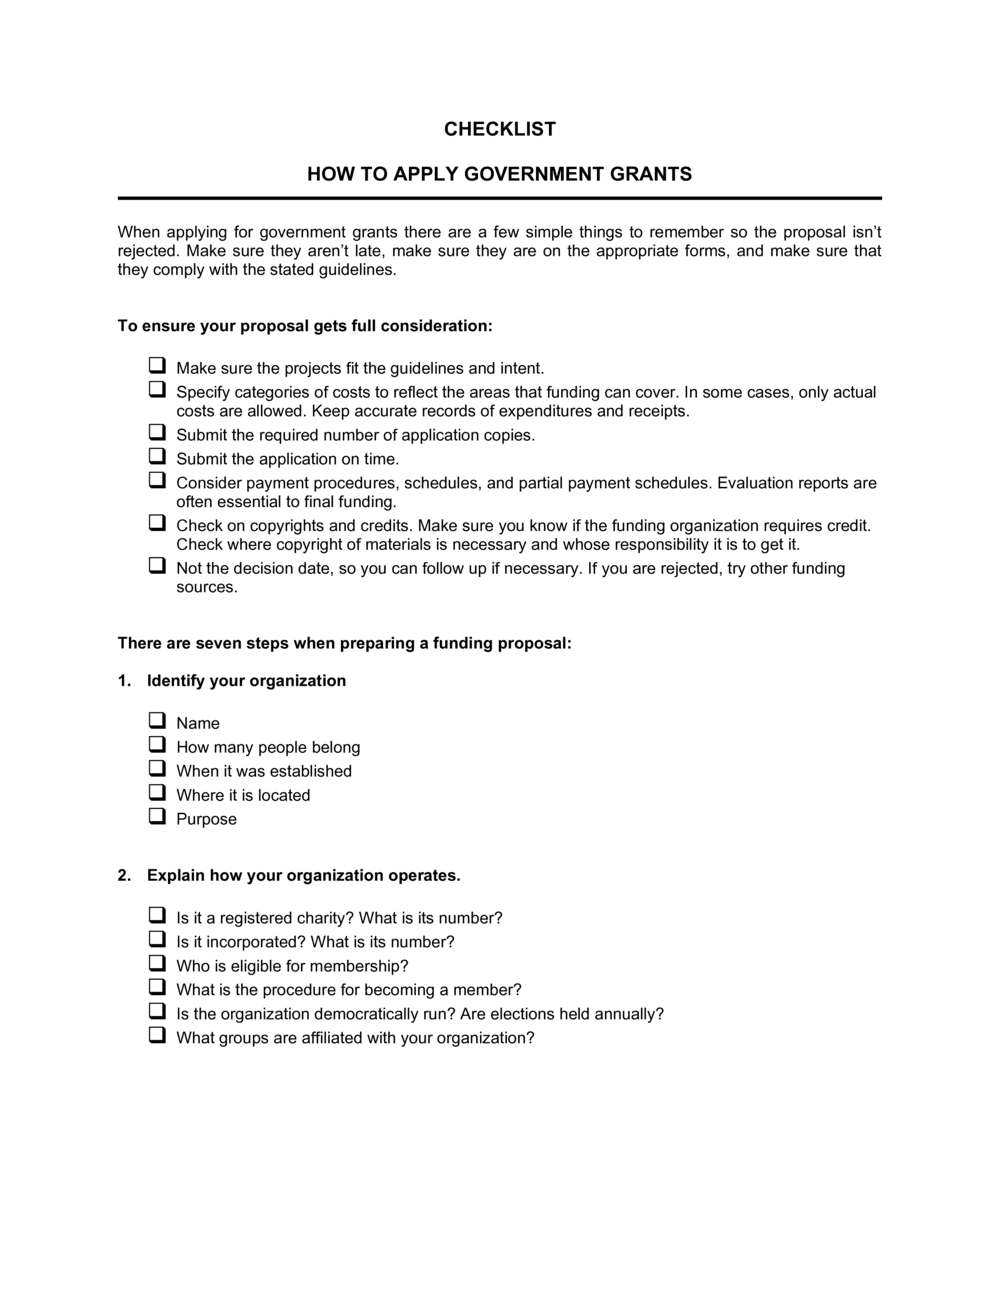 Business-in-a-Box's Checklist How to Apply Government Grants Template